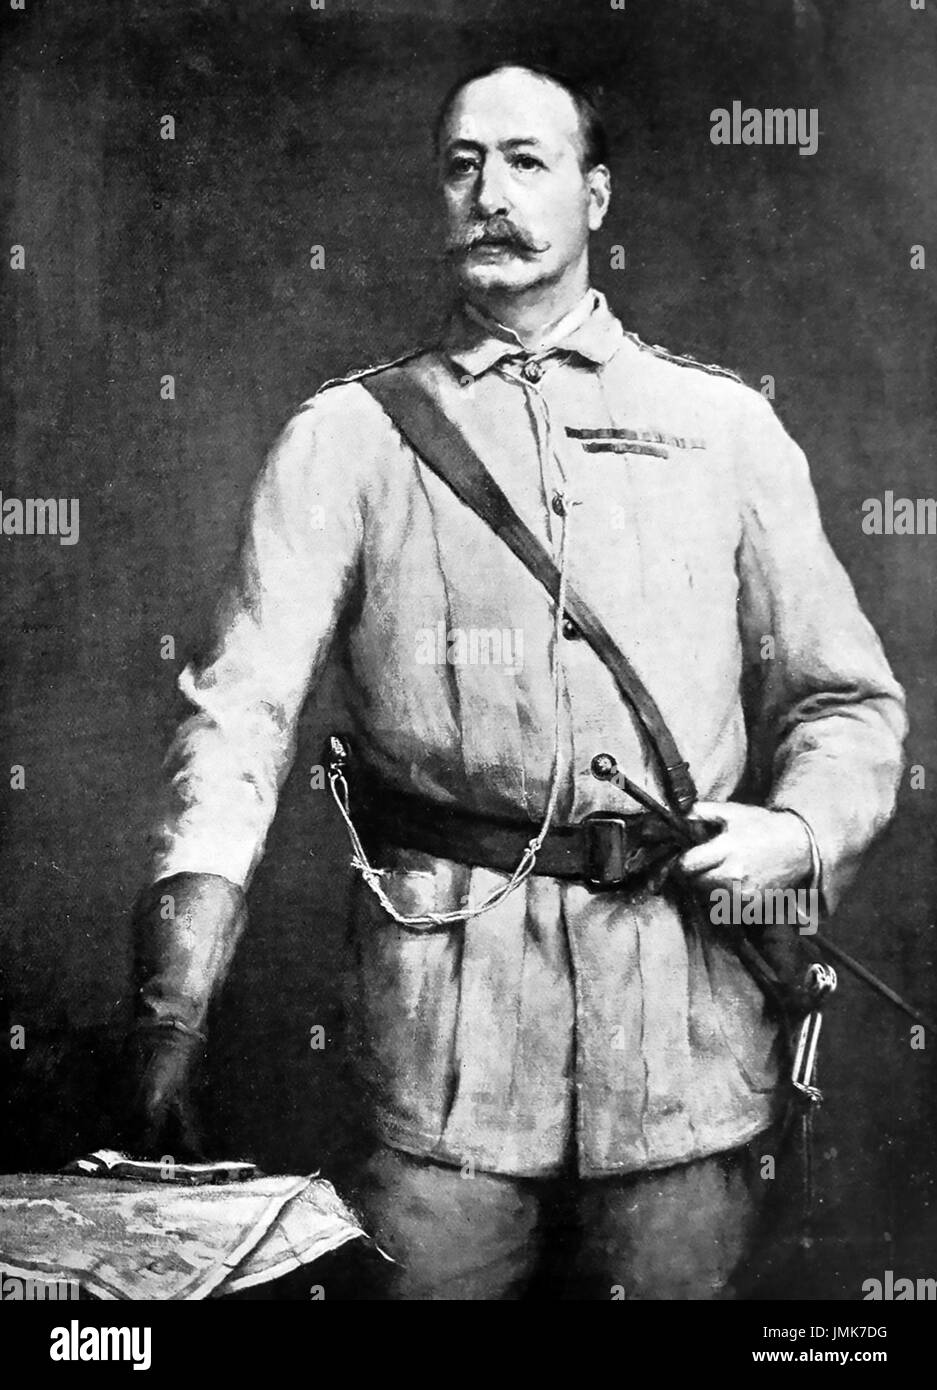 FRANCIS GRENFELL, 1st Baron Grenfell (1841-1925) British Army officer Stock Photo